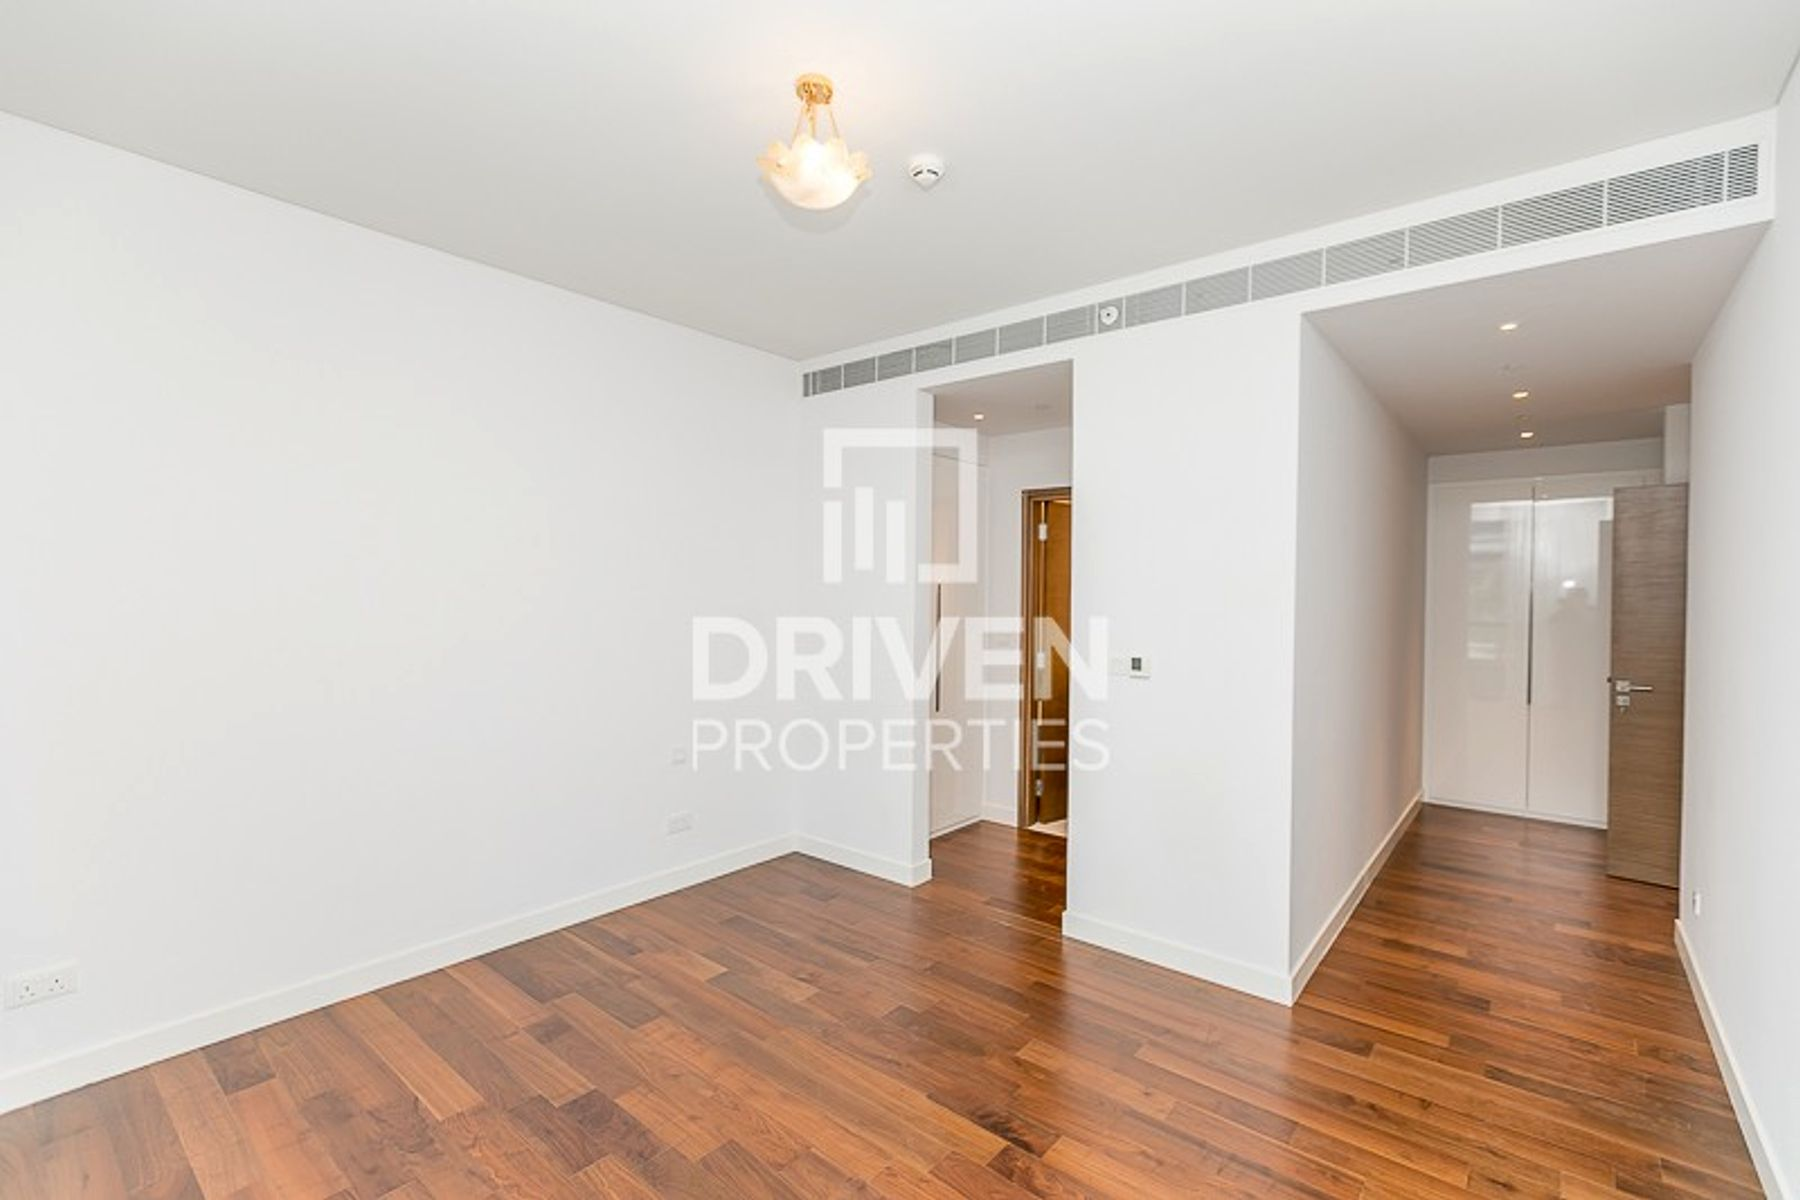 Apartment for Rent in Building 9, City Walk